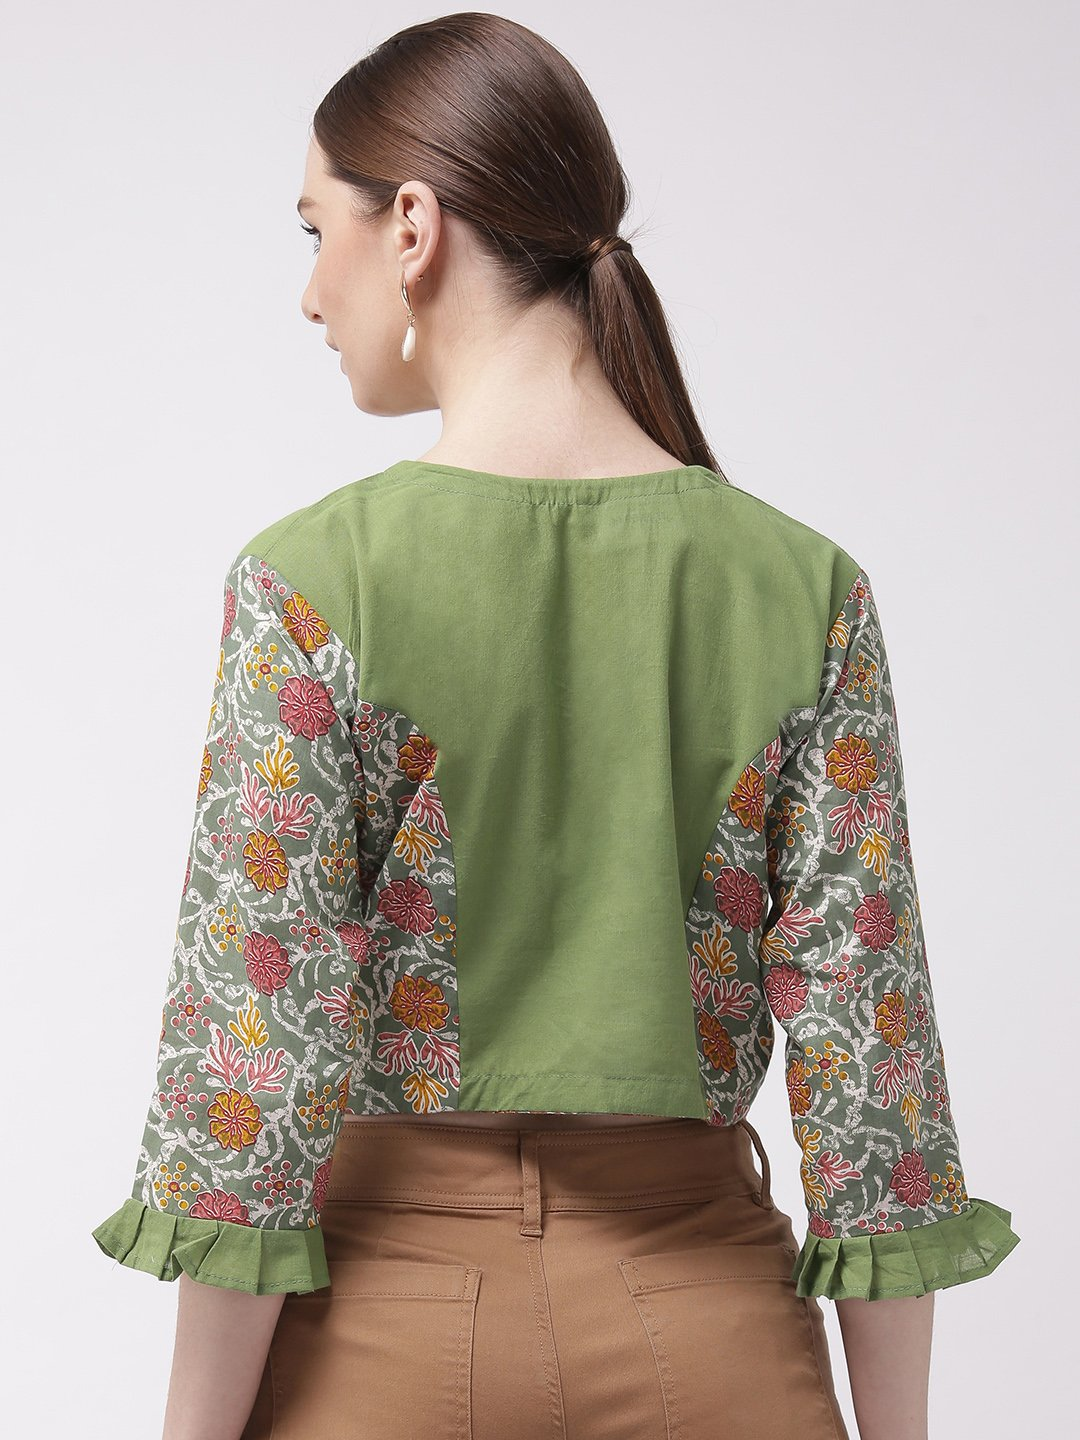 Crop Top Green - Printed Sleeve